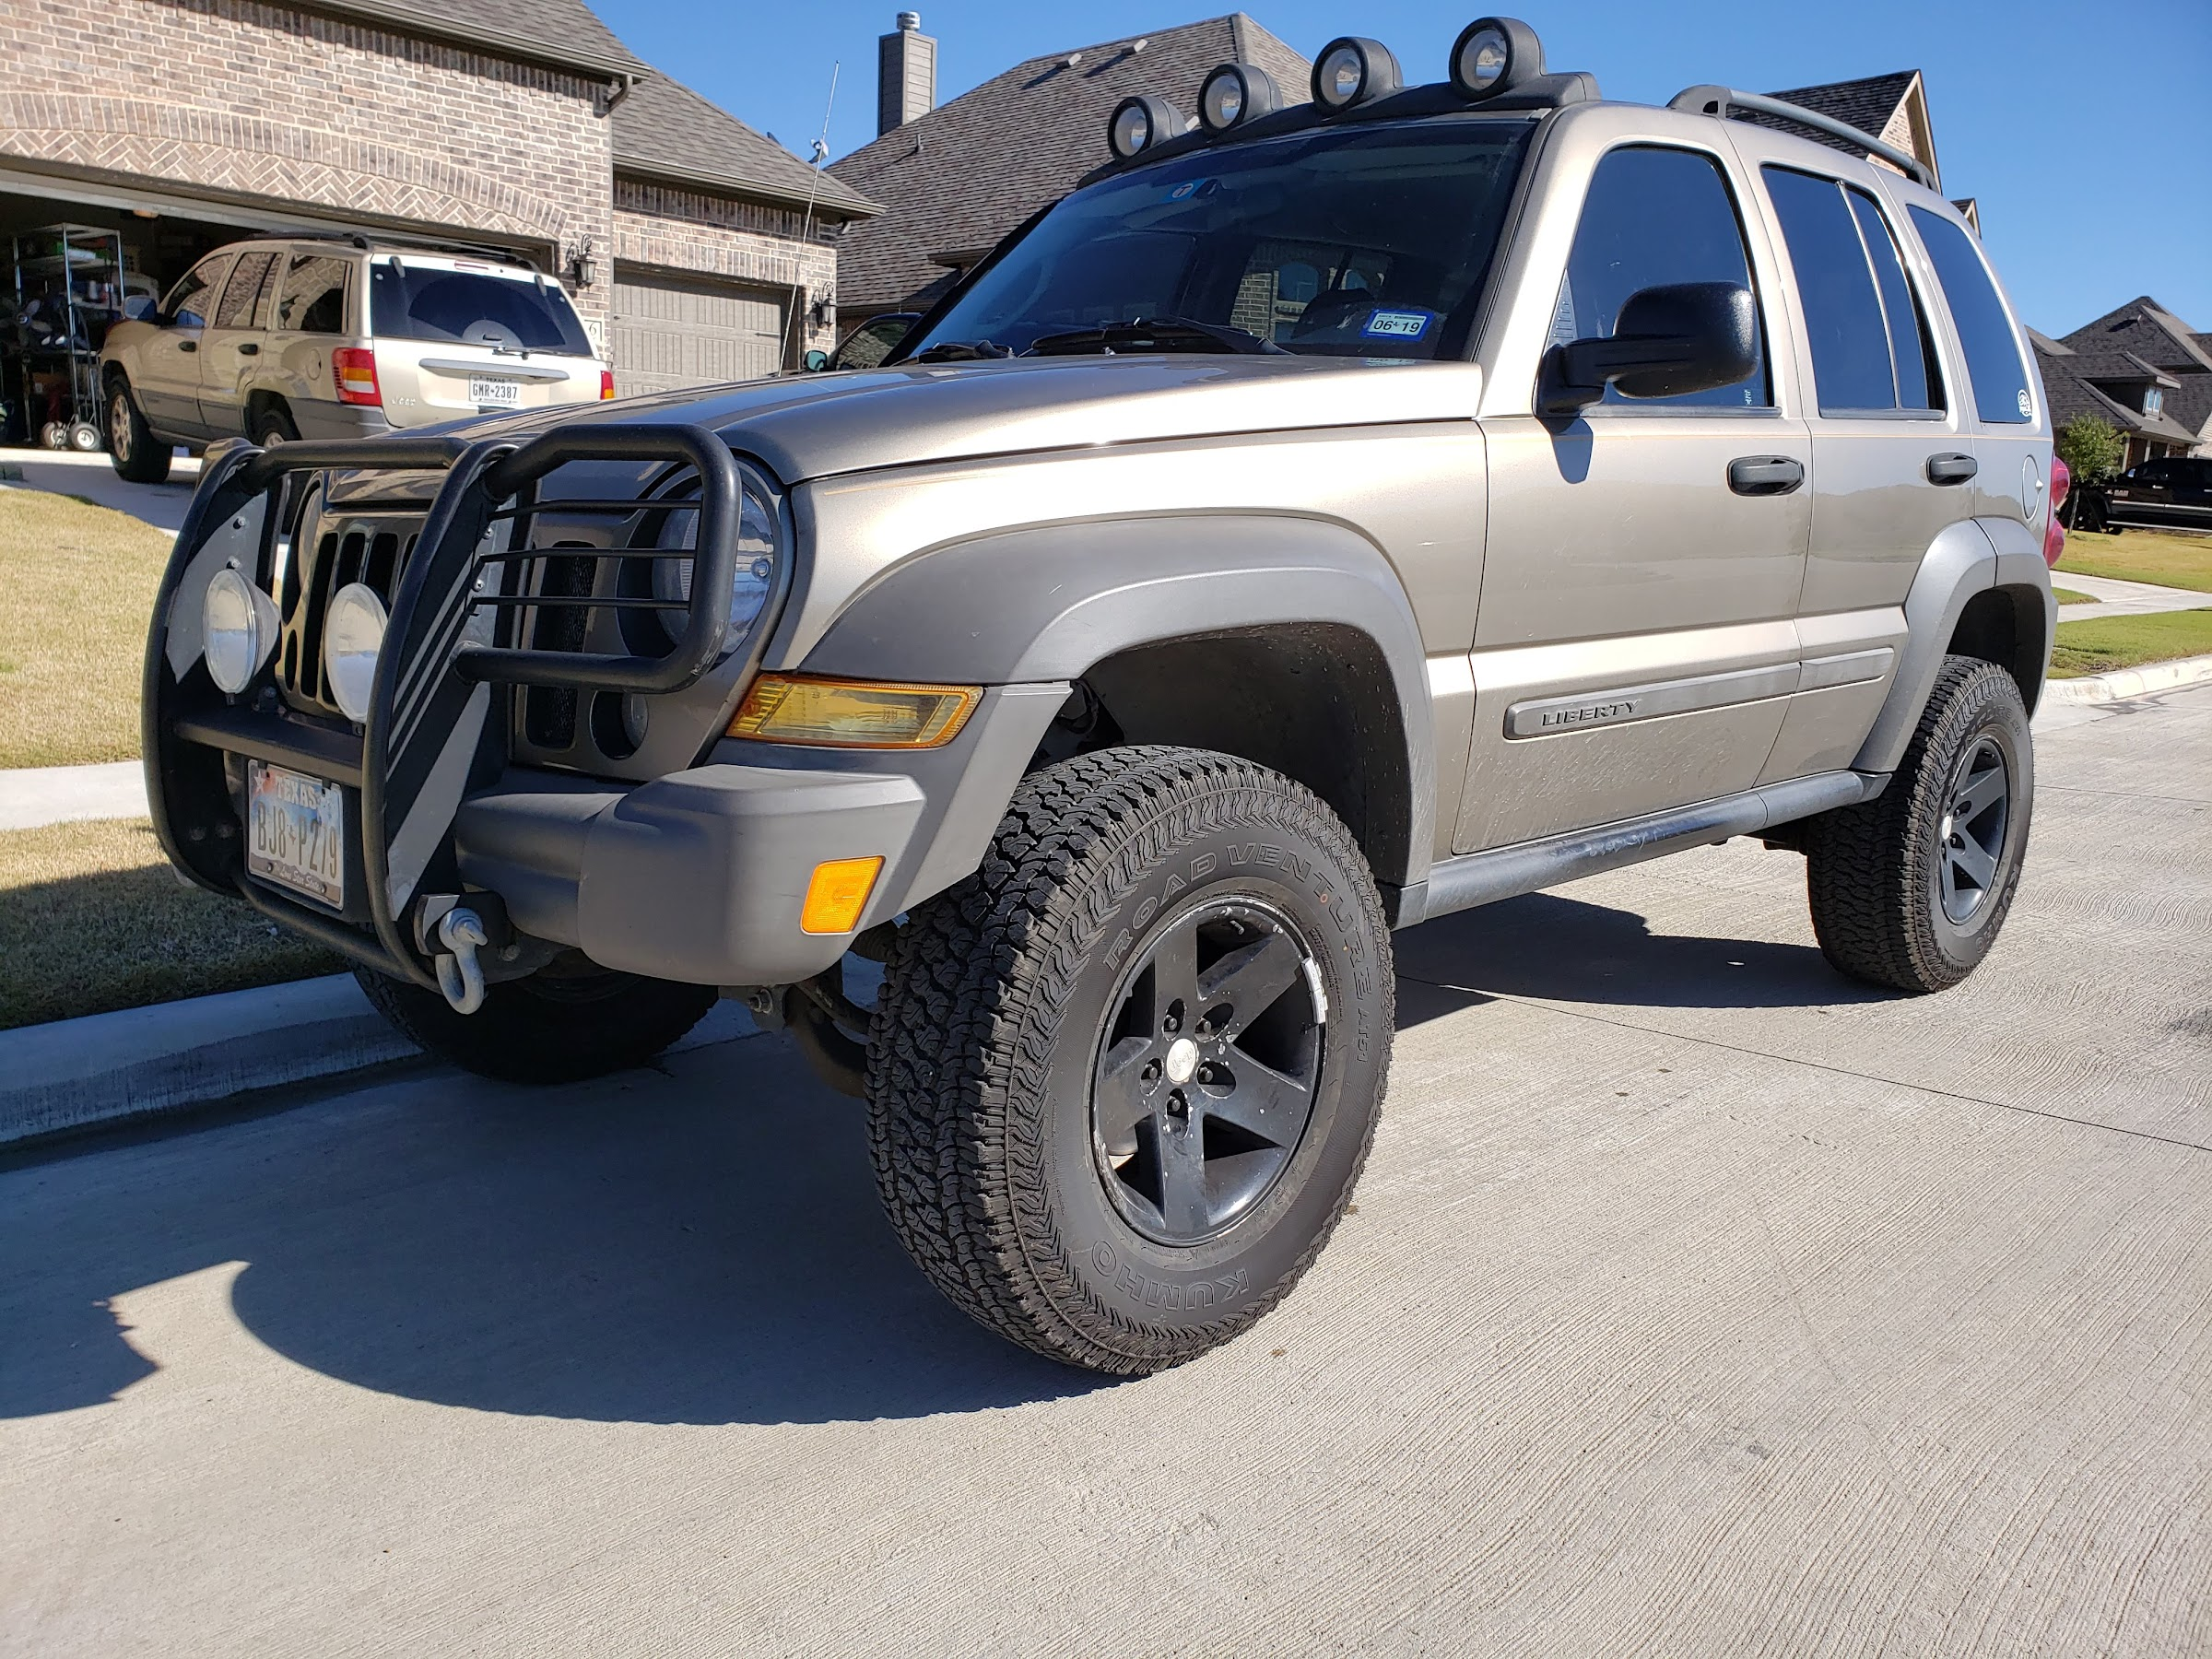 Unfortunately It S Time To Let My Kj Go Is A 2007 2wd Sport With 148k Ish Miles On These Pics Were Taken About 3 Weeks Ago